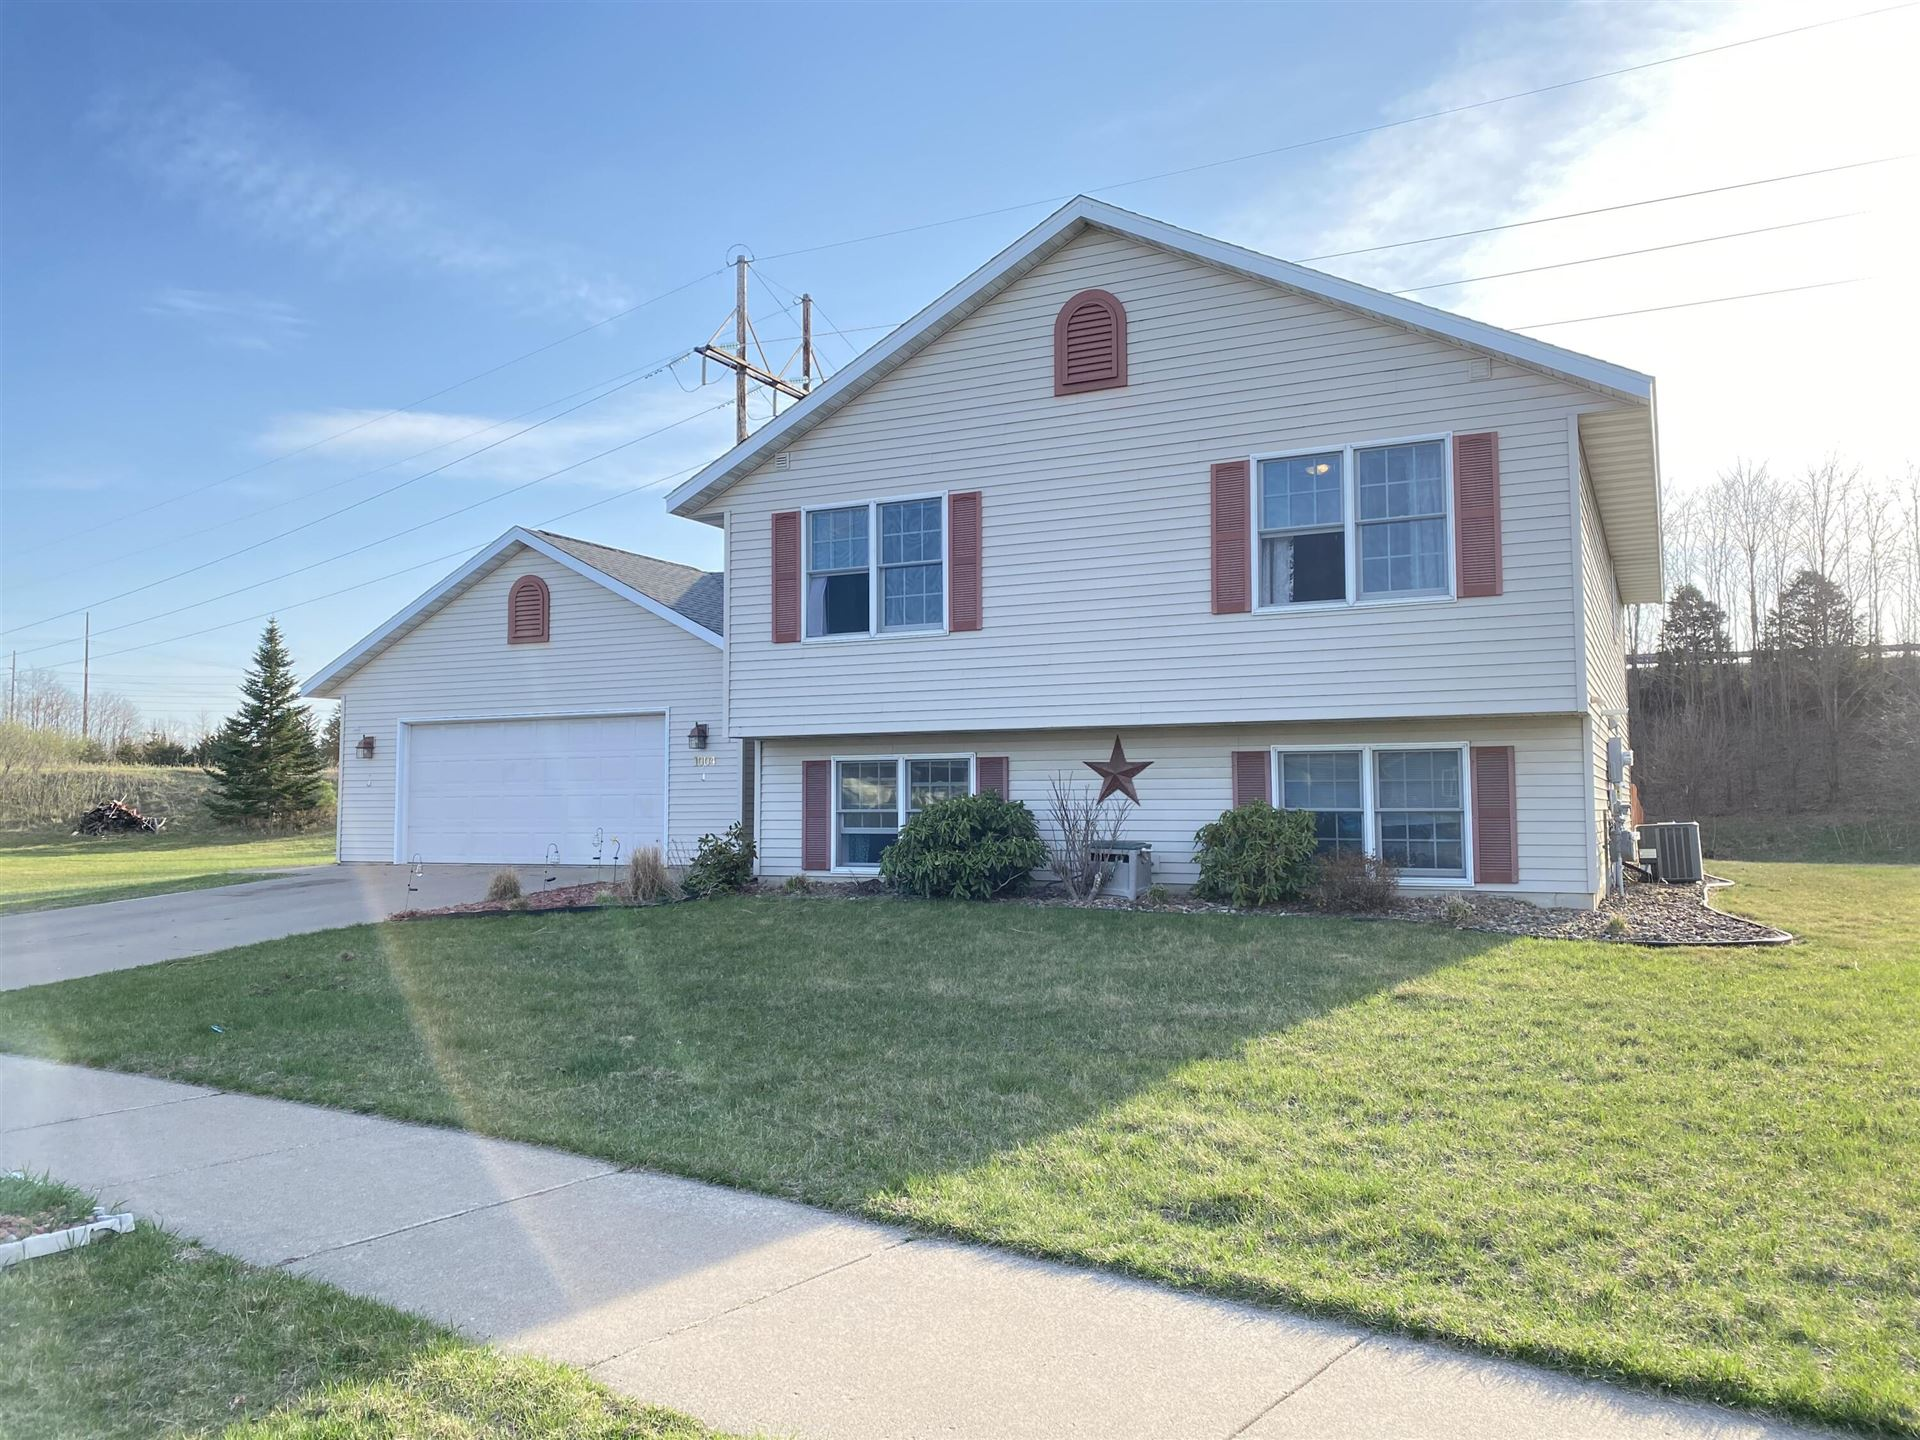 1004 REMINGTON DR, Holmen, WI 54636 - MLS#: 1734048